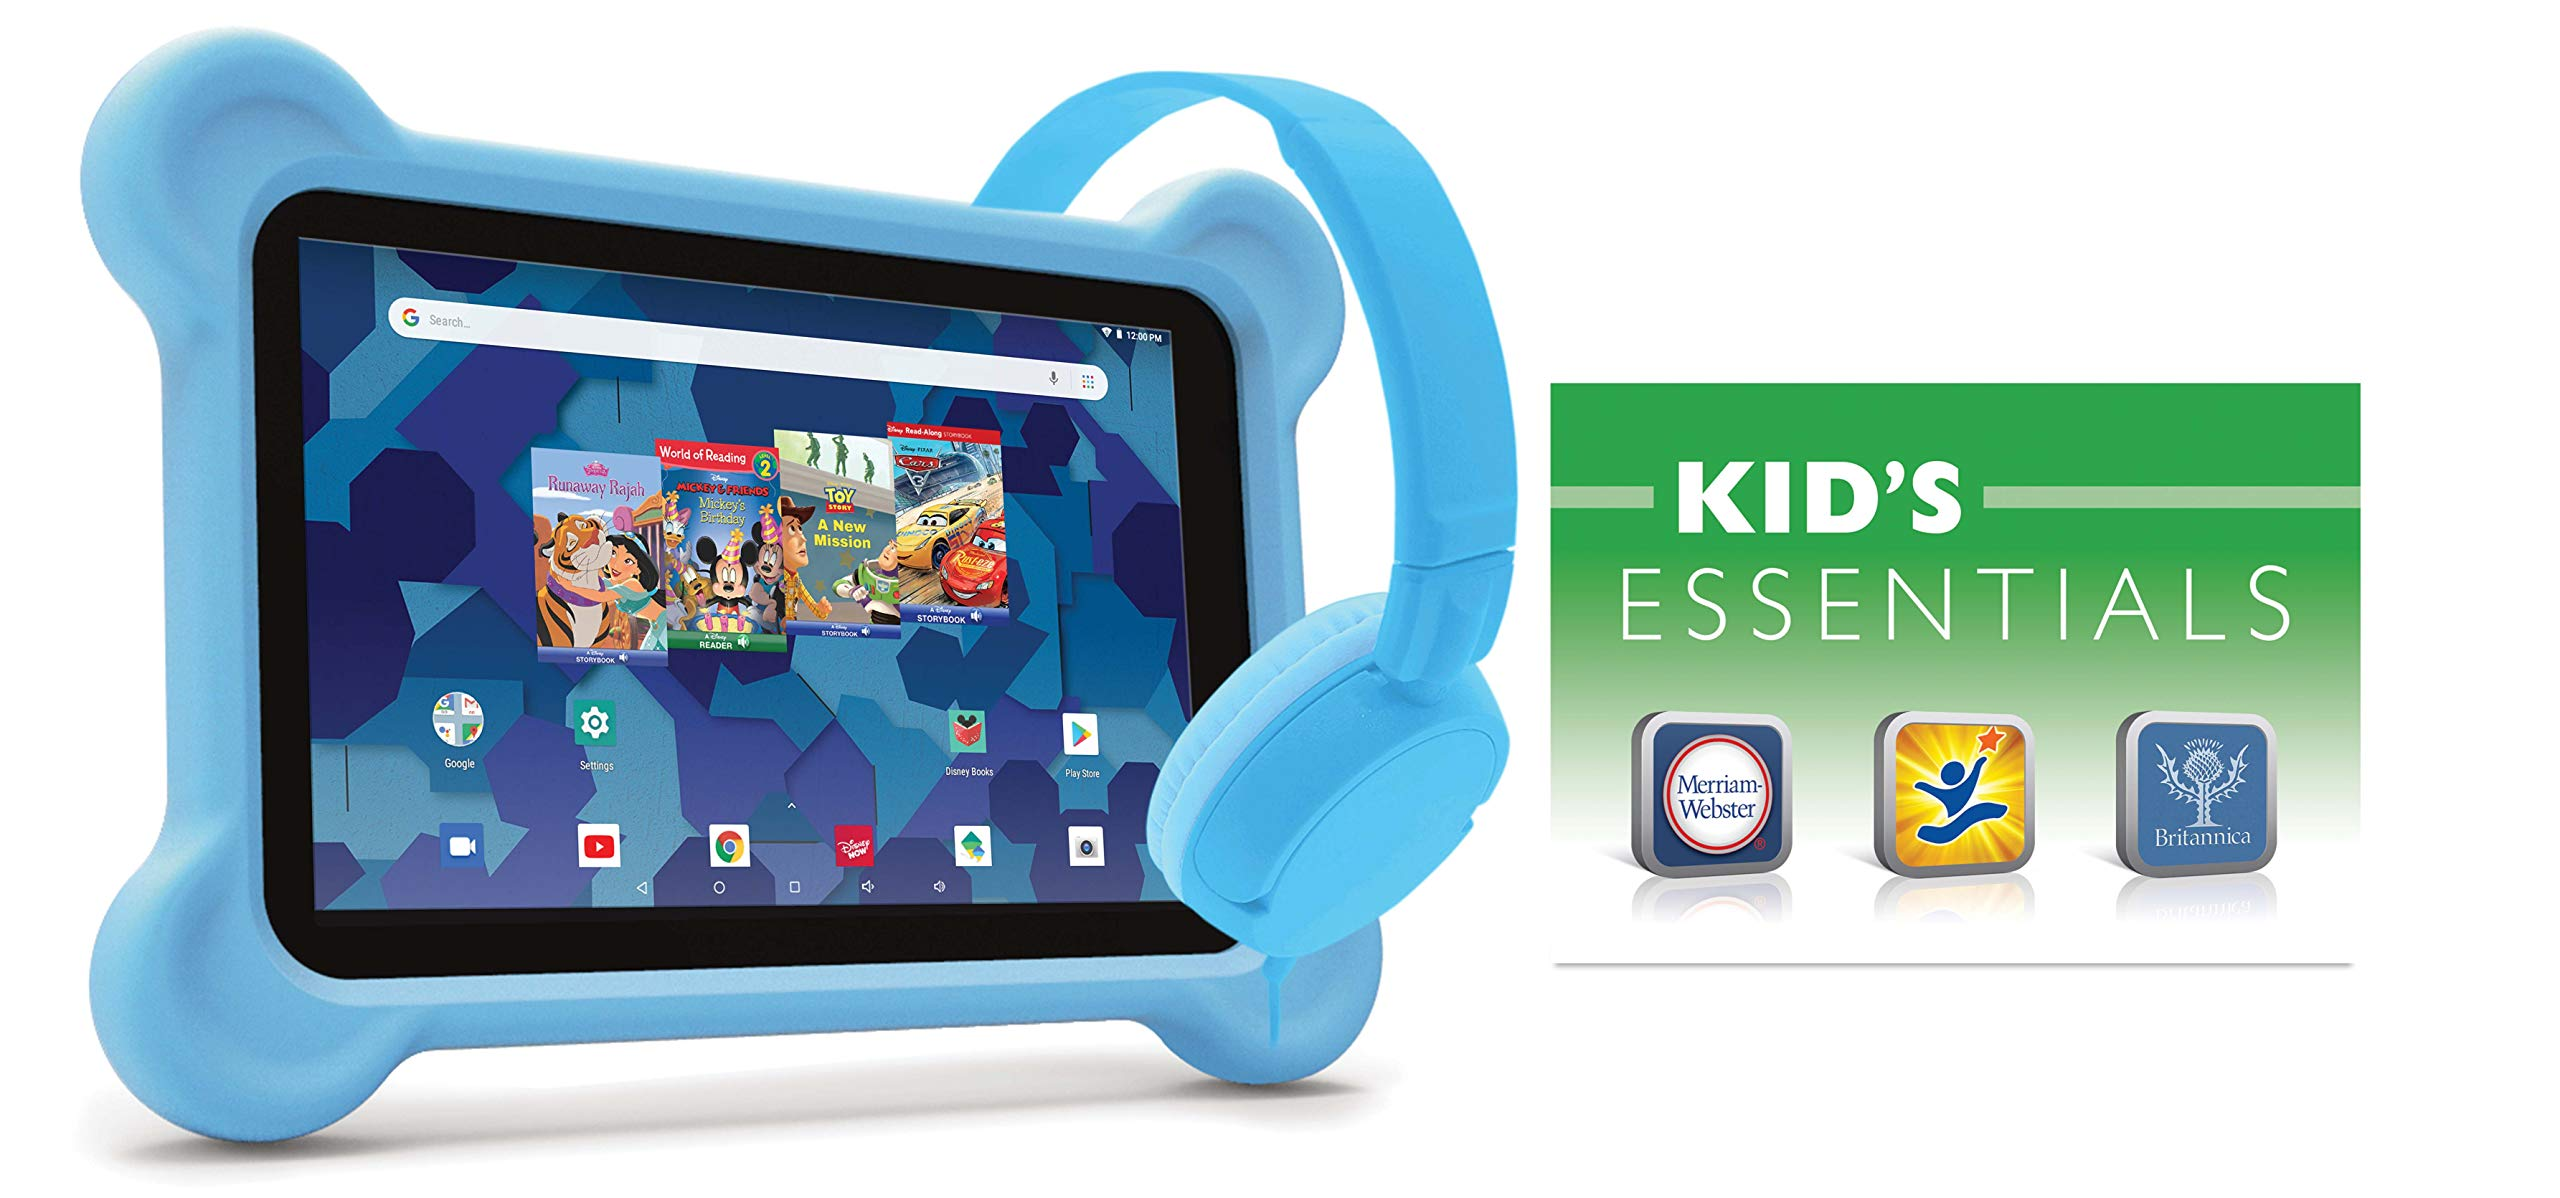 10.1-inch Tablet with Bumper case and Headphones (Blue)